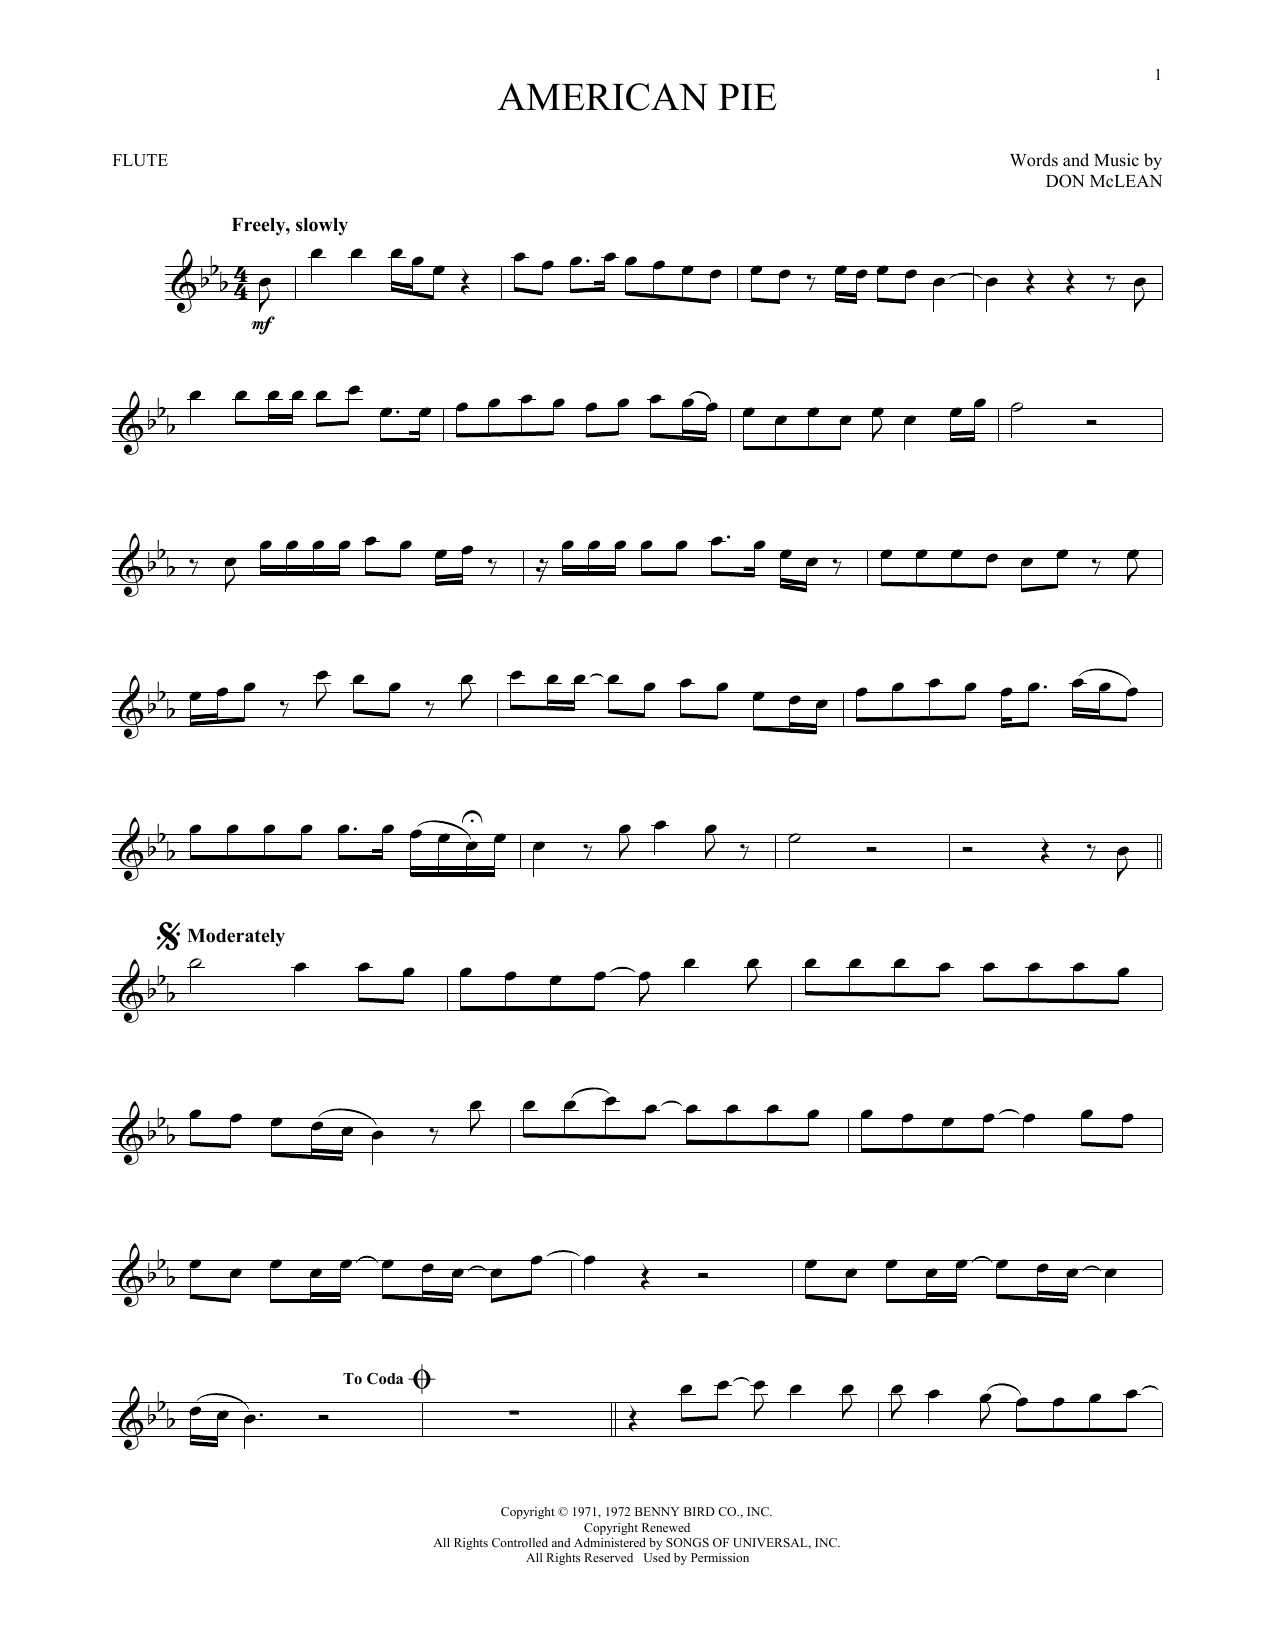 Sheet music digital files to print licensed don mclean digital sheet music digital by merriam music baditri Image collections